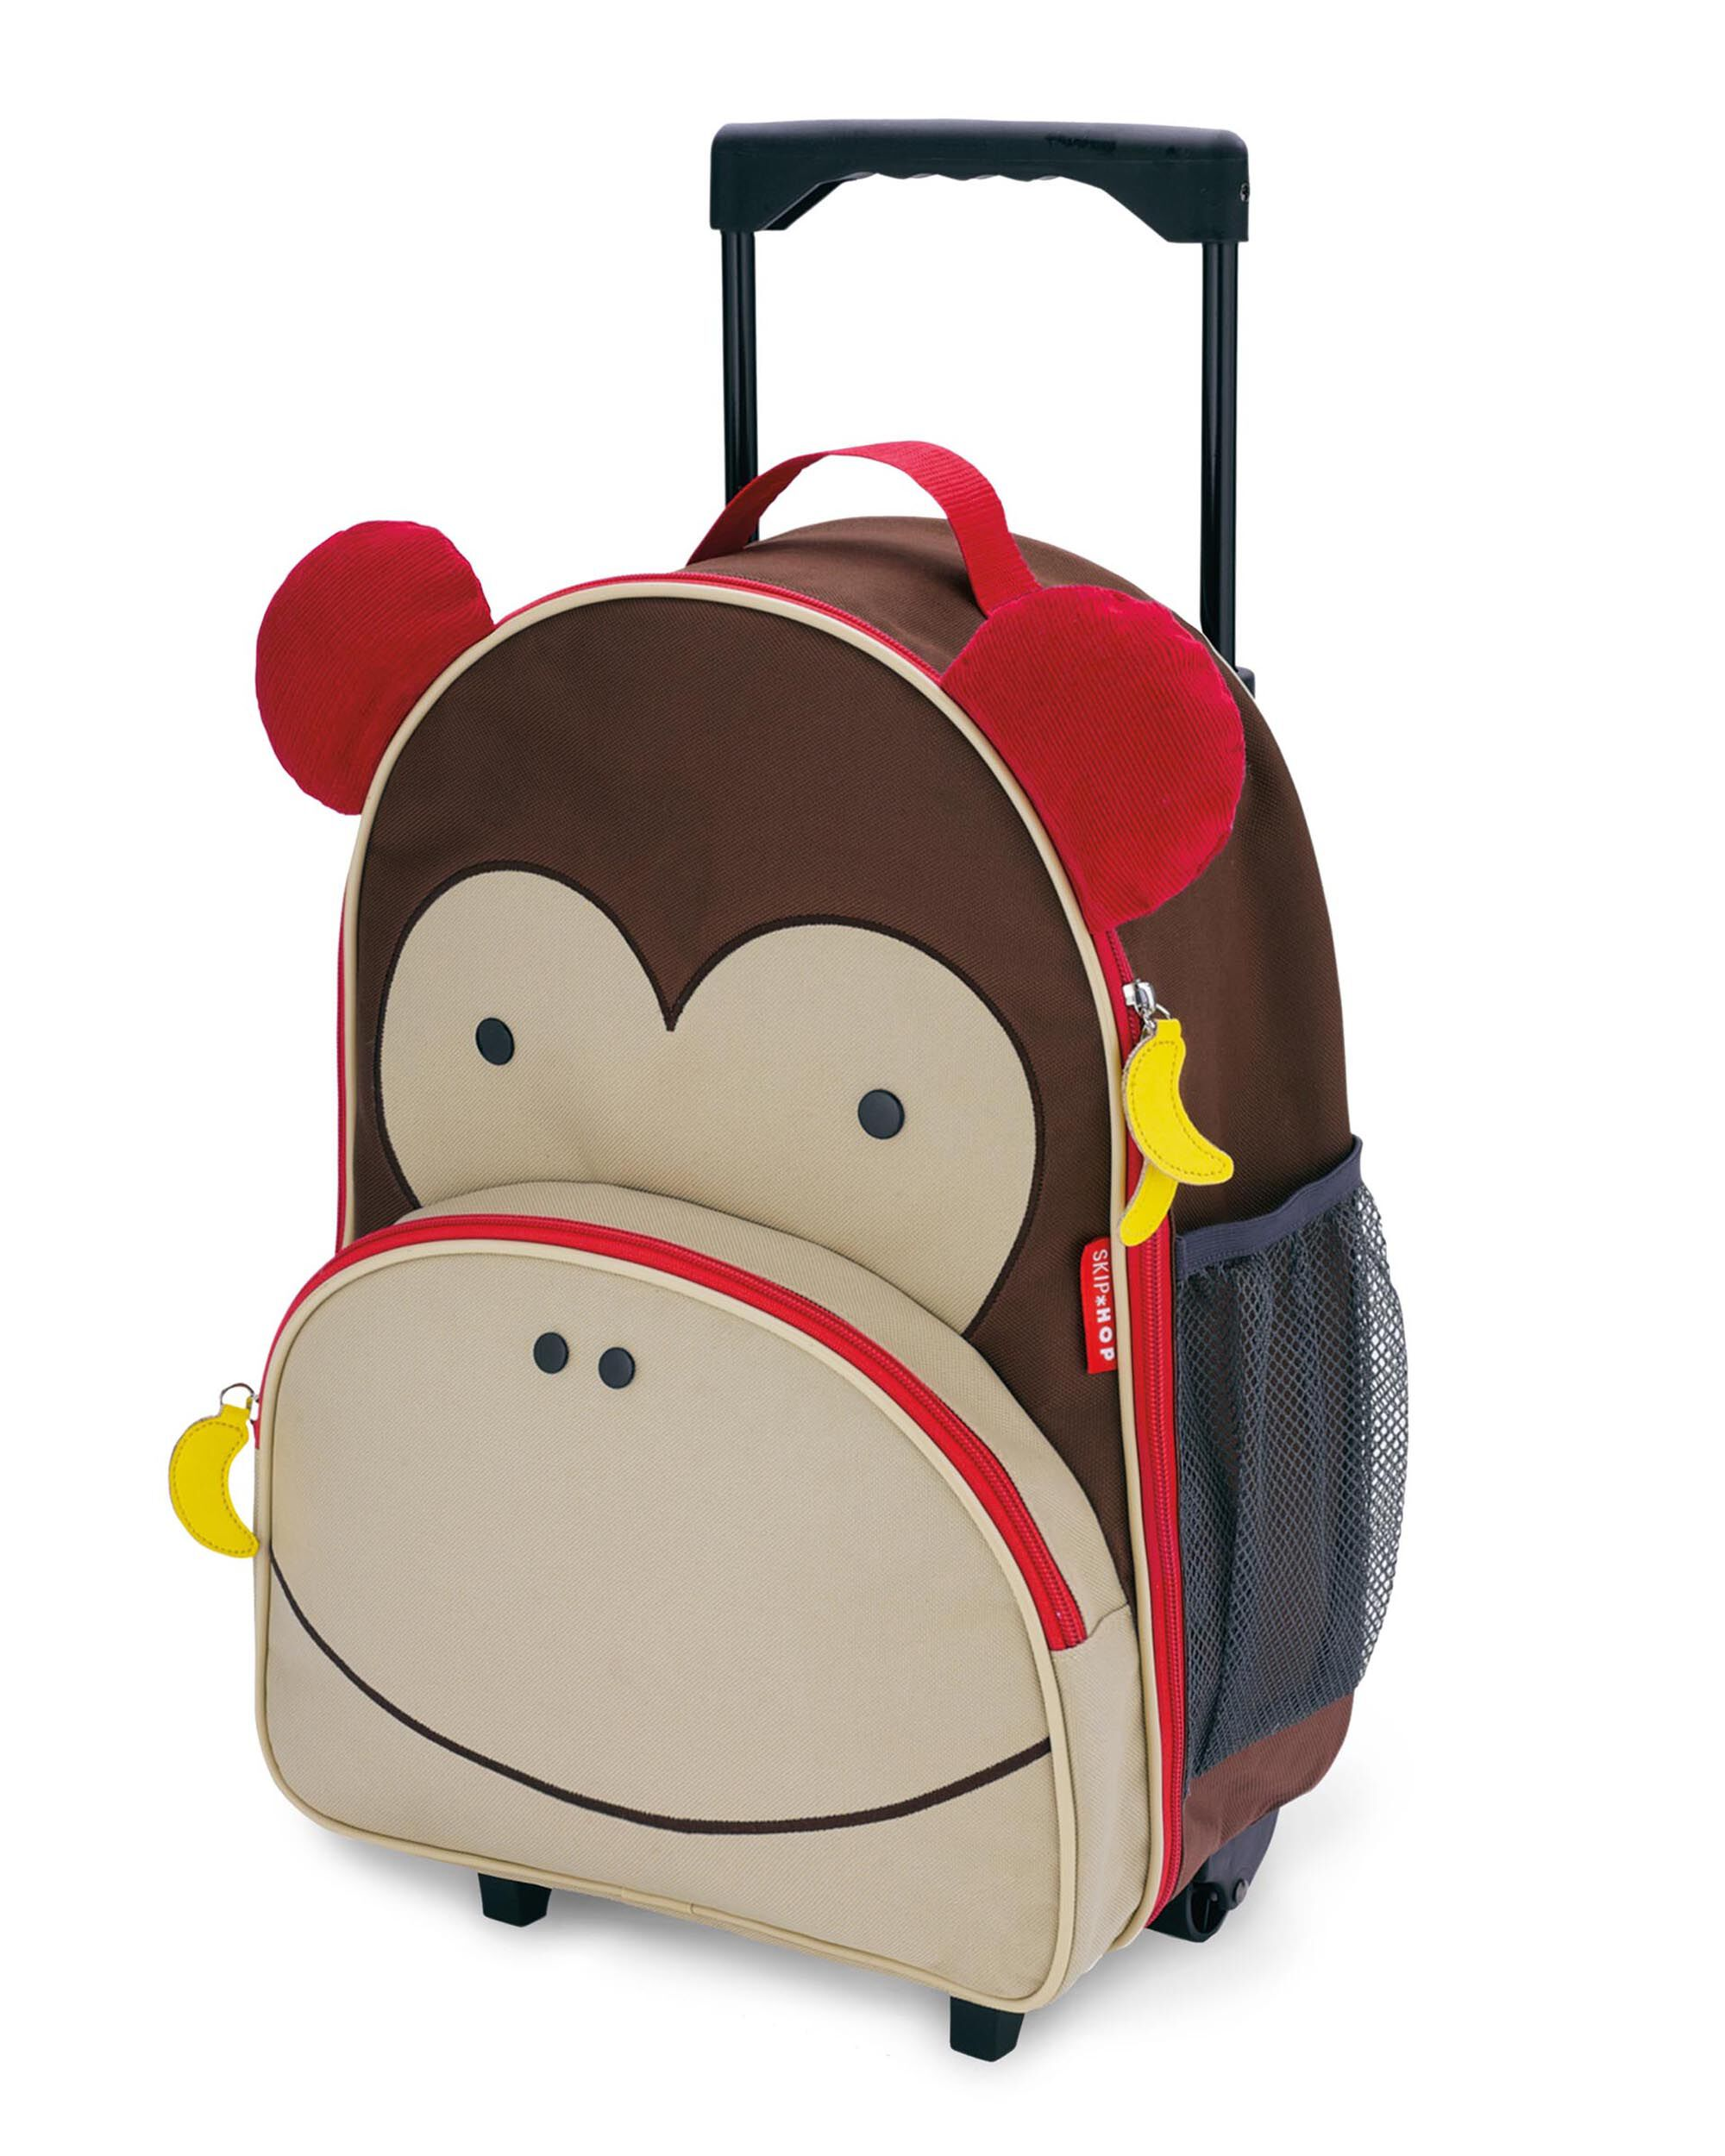 Oshkoshbgosh Zoo Rolling Luggage